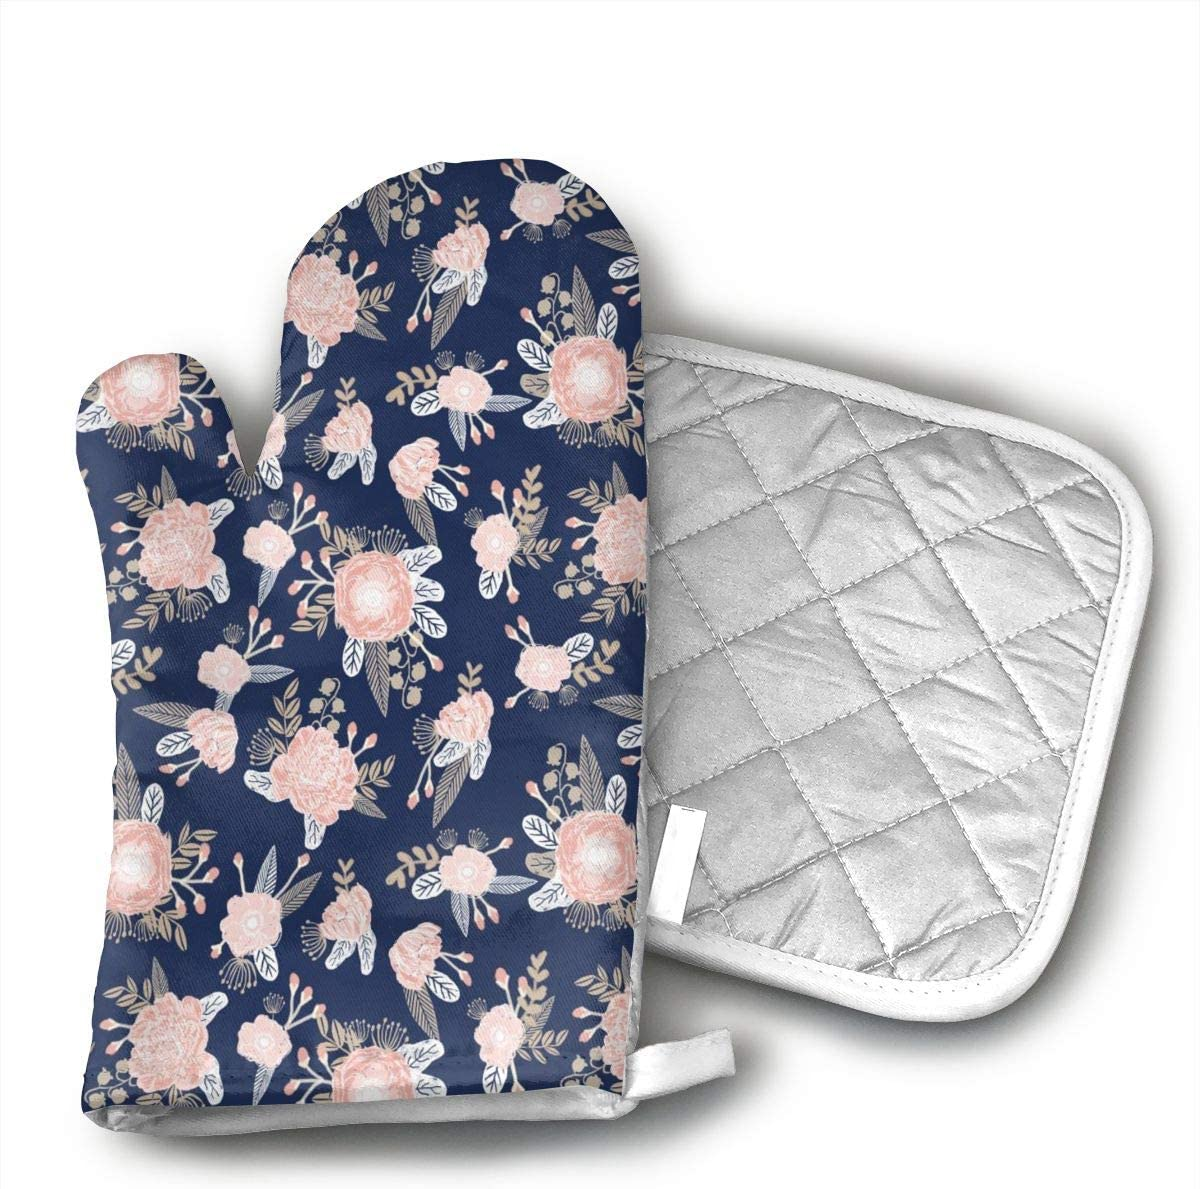 Florals Navy Blush Pink Floral Oven Mitts and Potholders (2-Piece Sets) - Kitchen Set with Cotton Heat Resistant,Oven Gloves for BBQ Cooking Baking Grilling